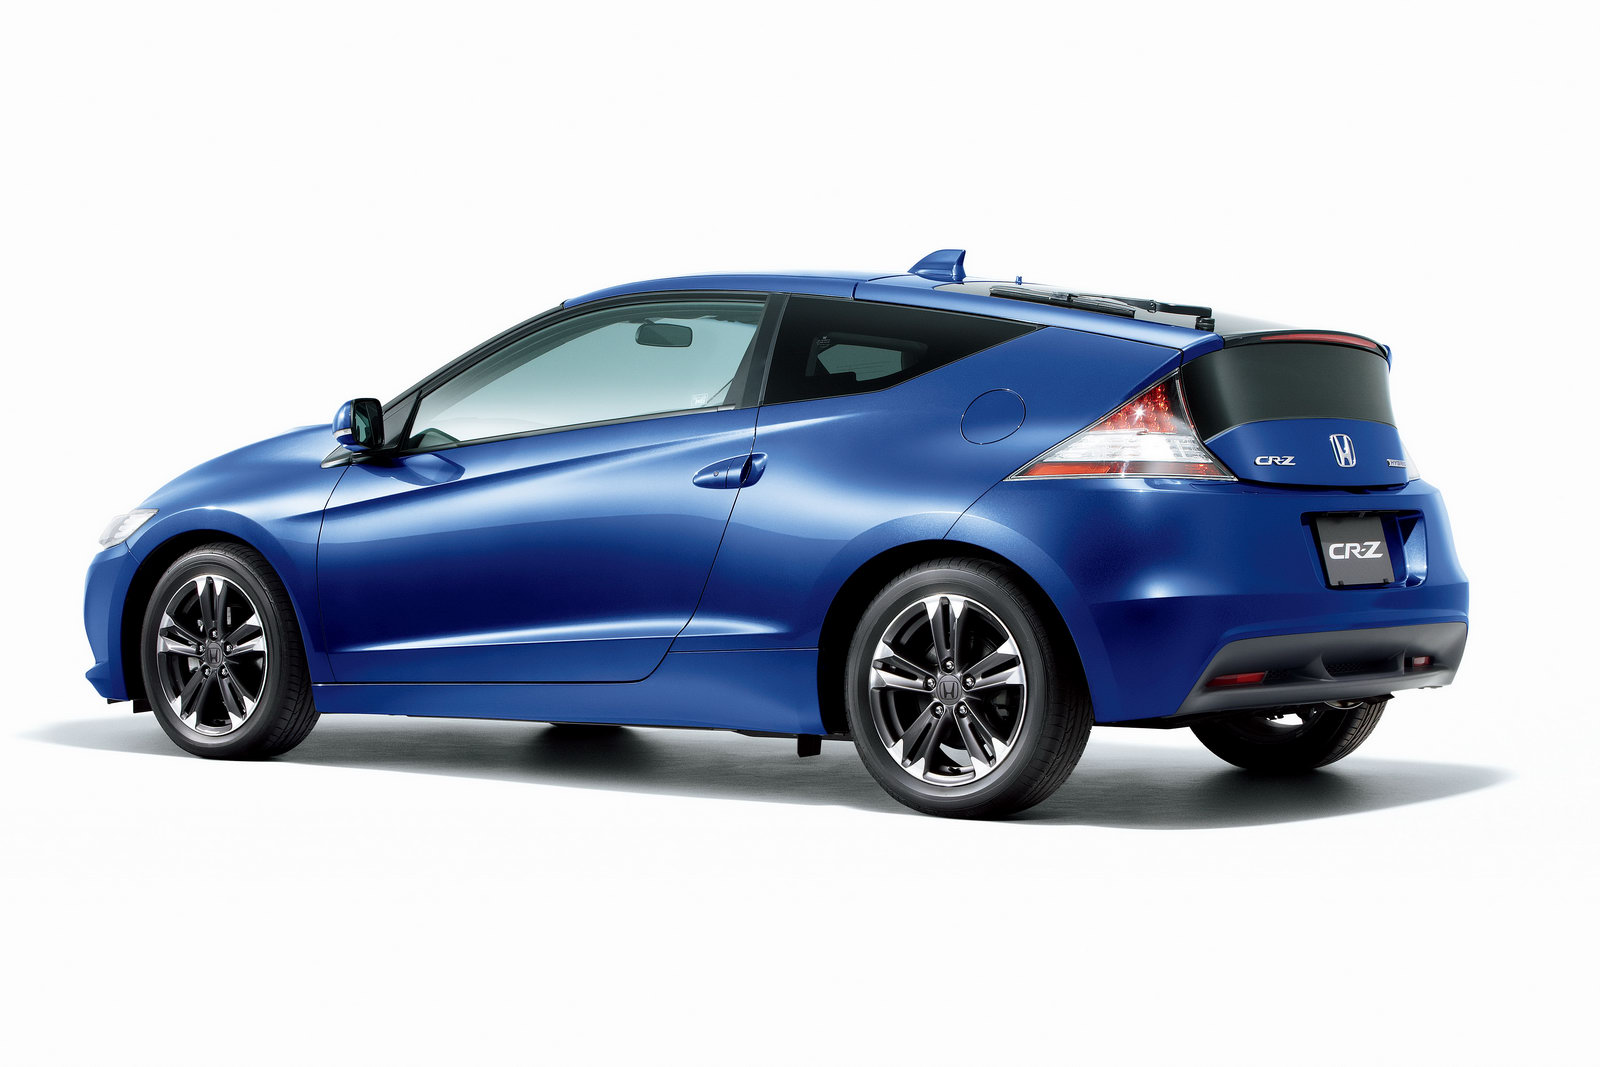 Honda Cr Z Sports Hybrid 2016 Exterior Rear Side View